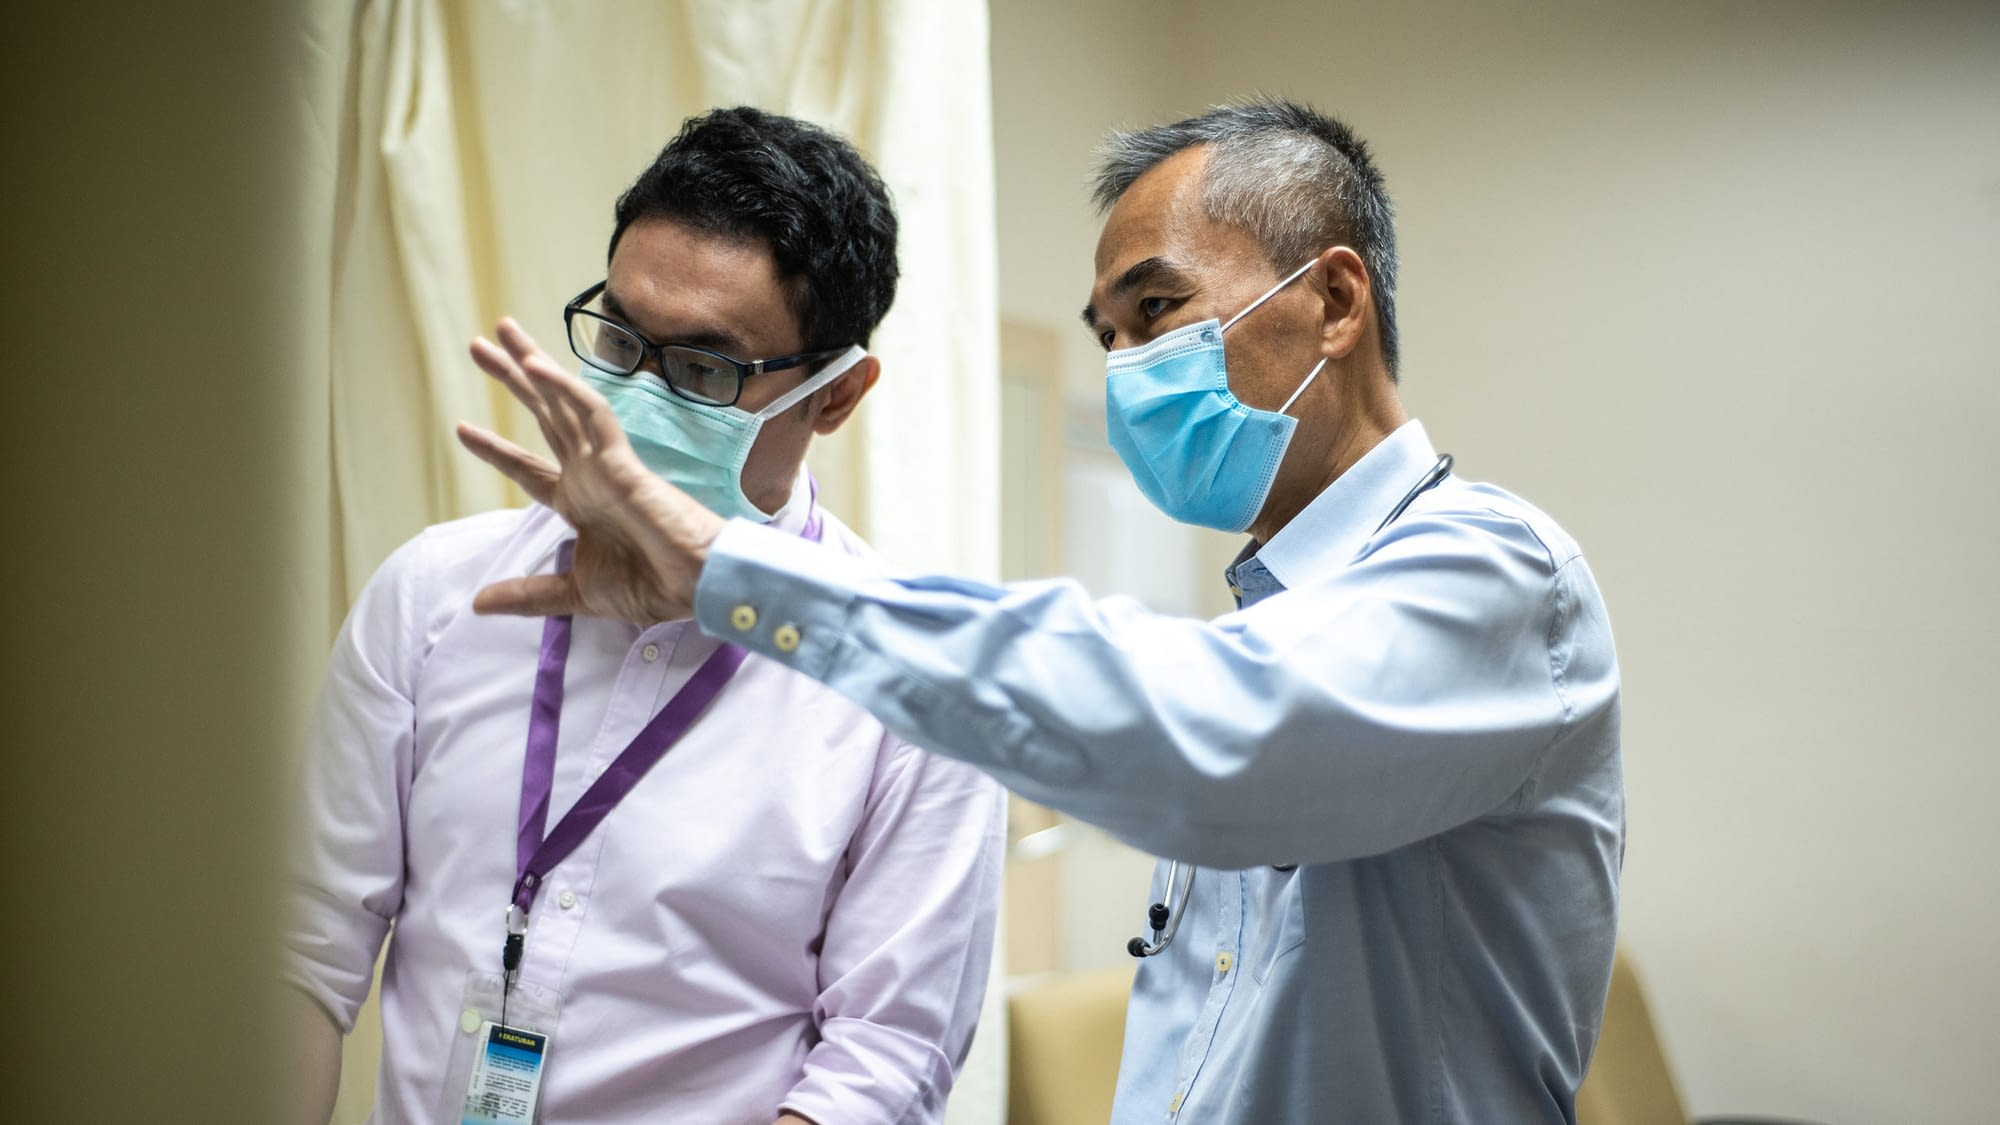 Doctors discussing in hospital setting